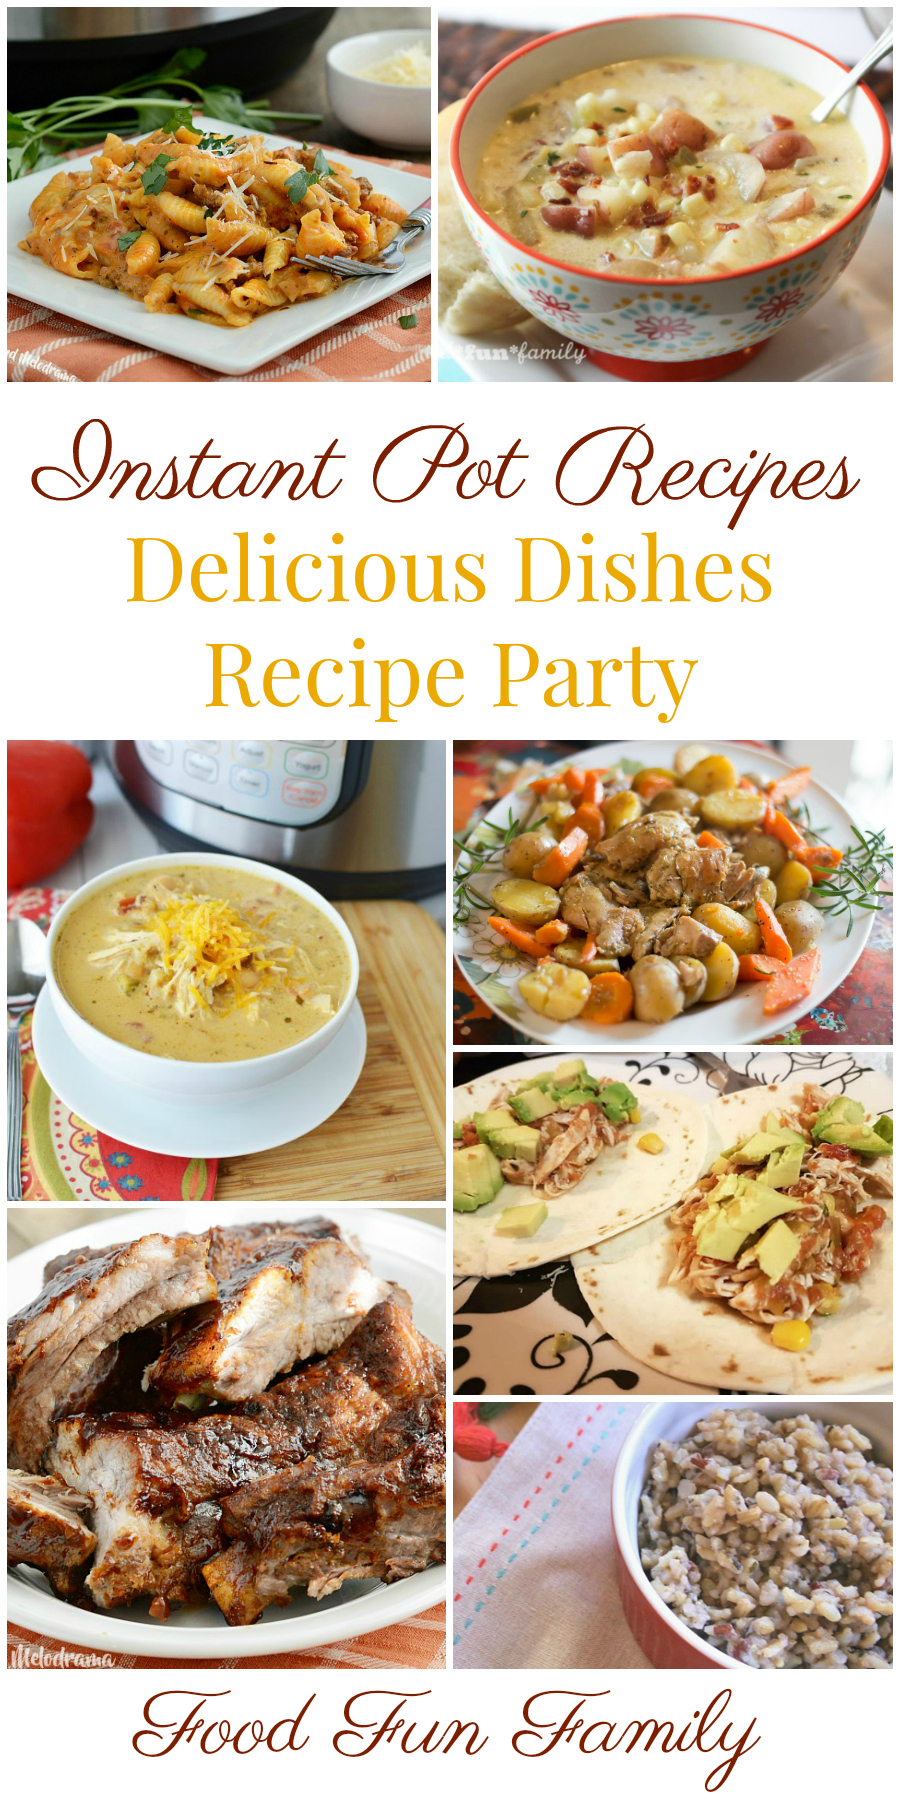 Instant Pot Recipes - a Delicious Dishes Recipe Party with Food Fun Family